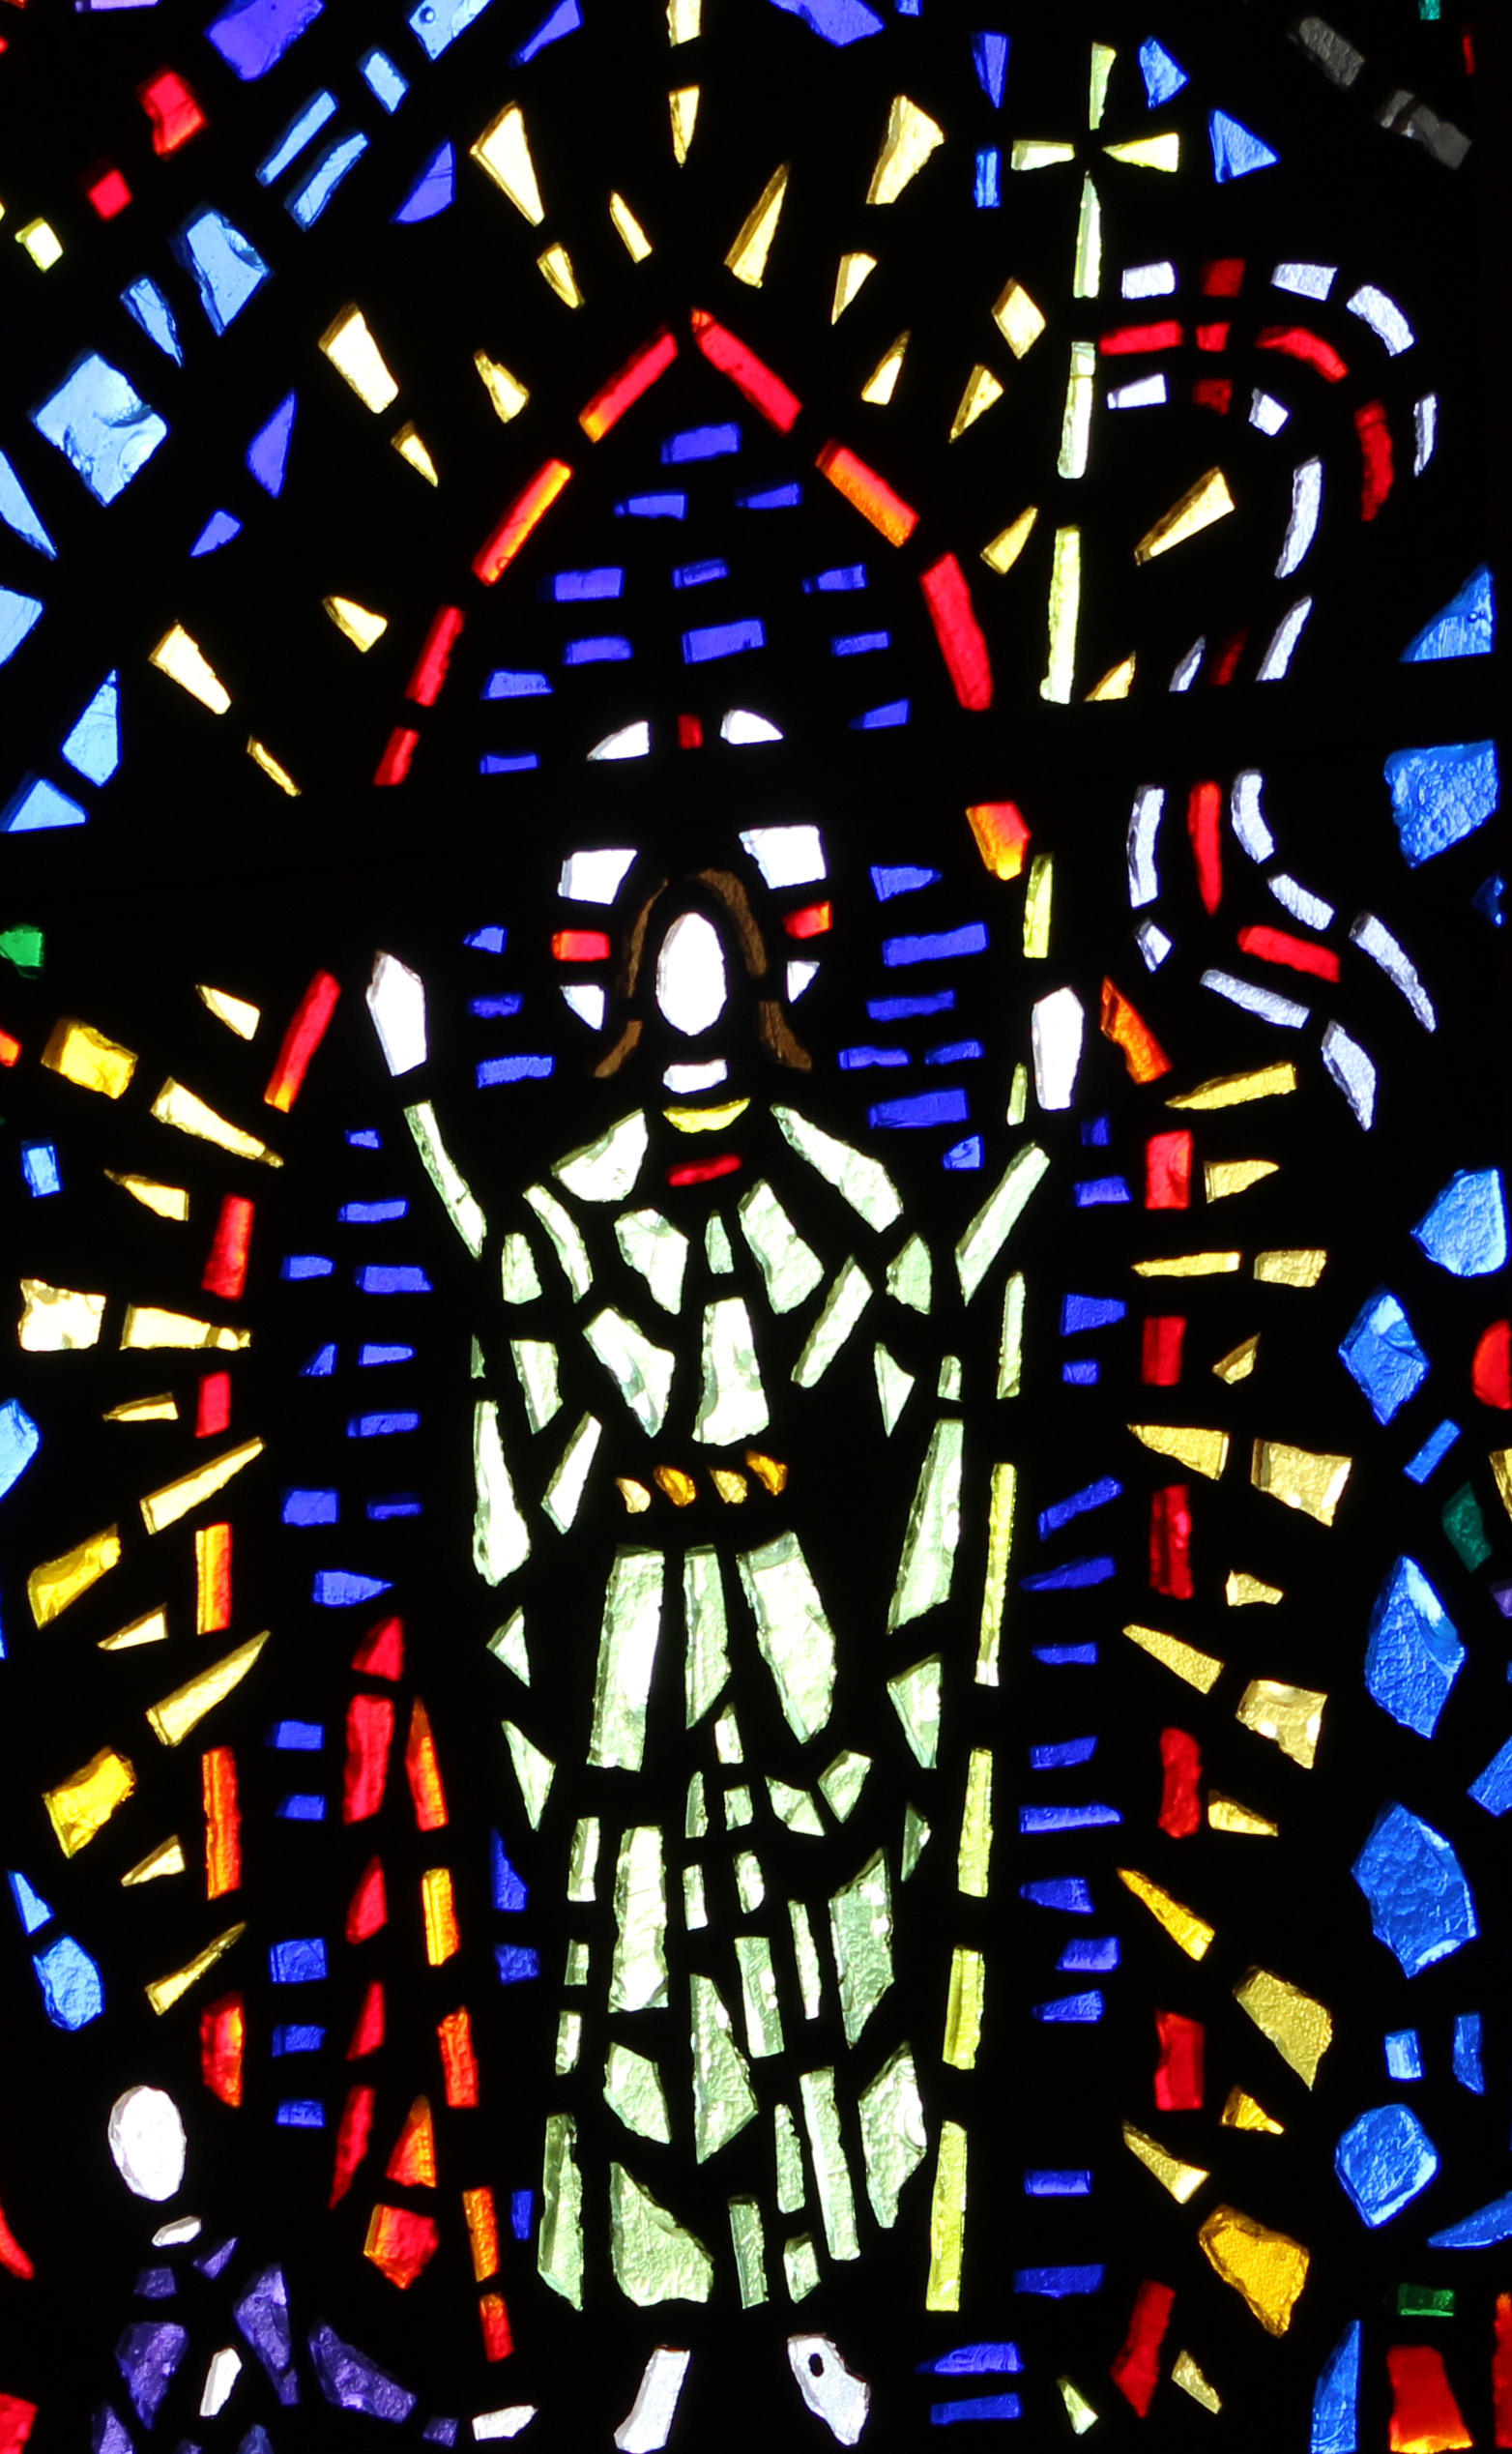 Stained glass 4.jpg